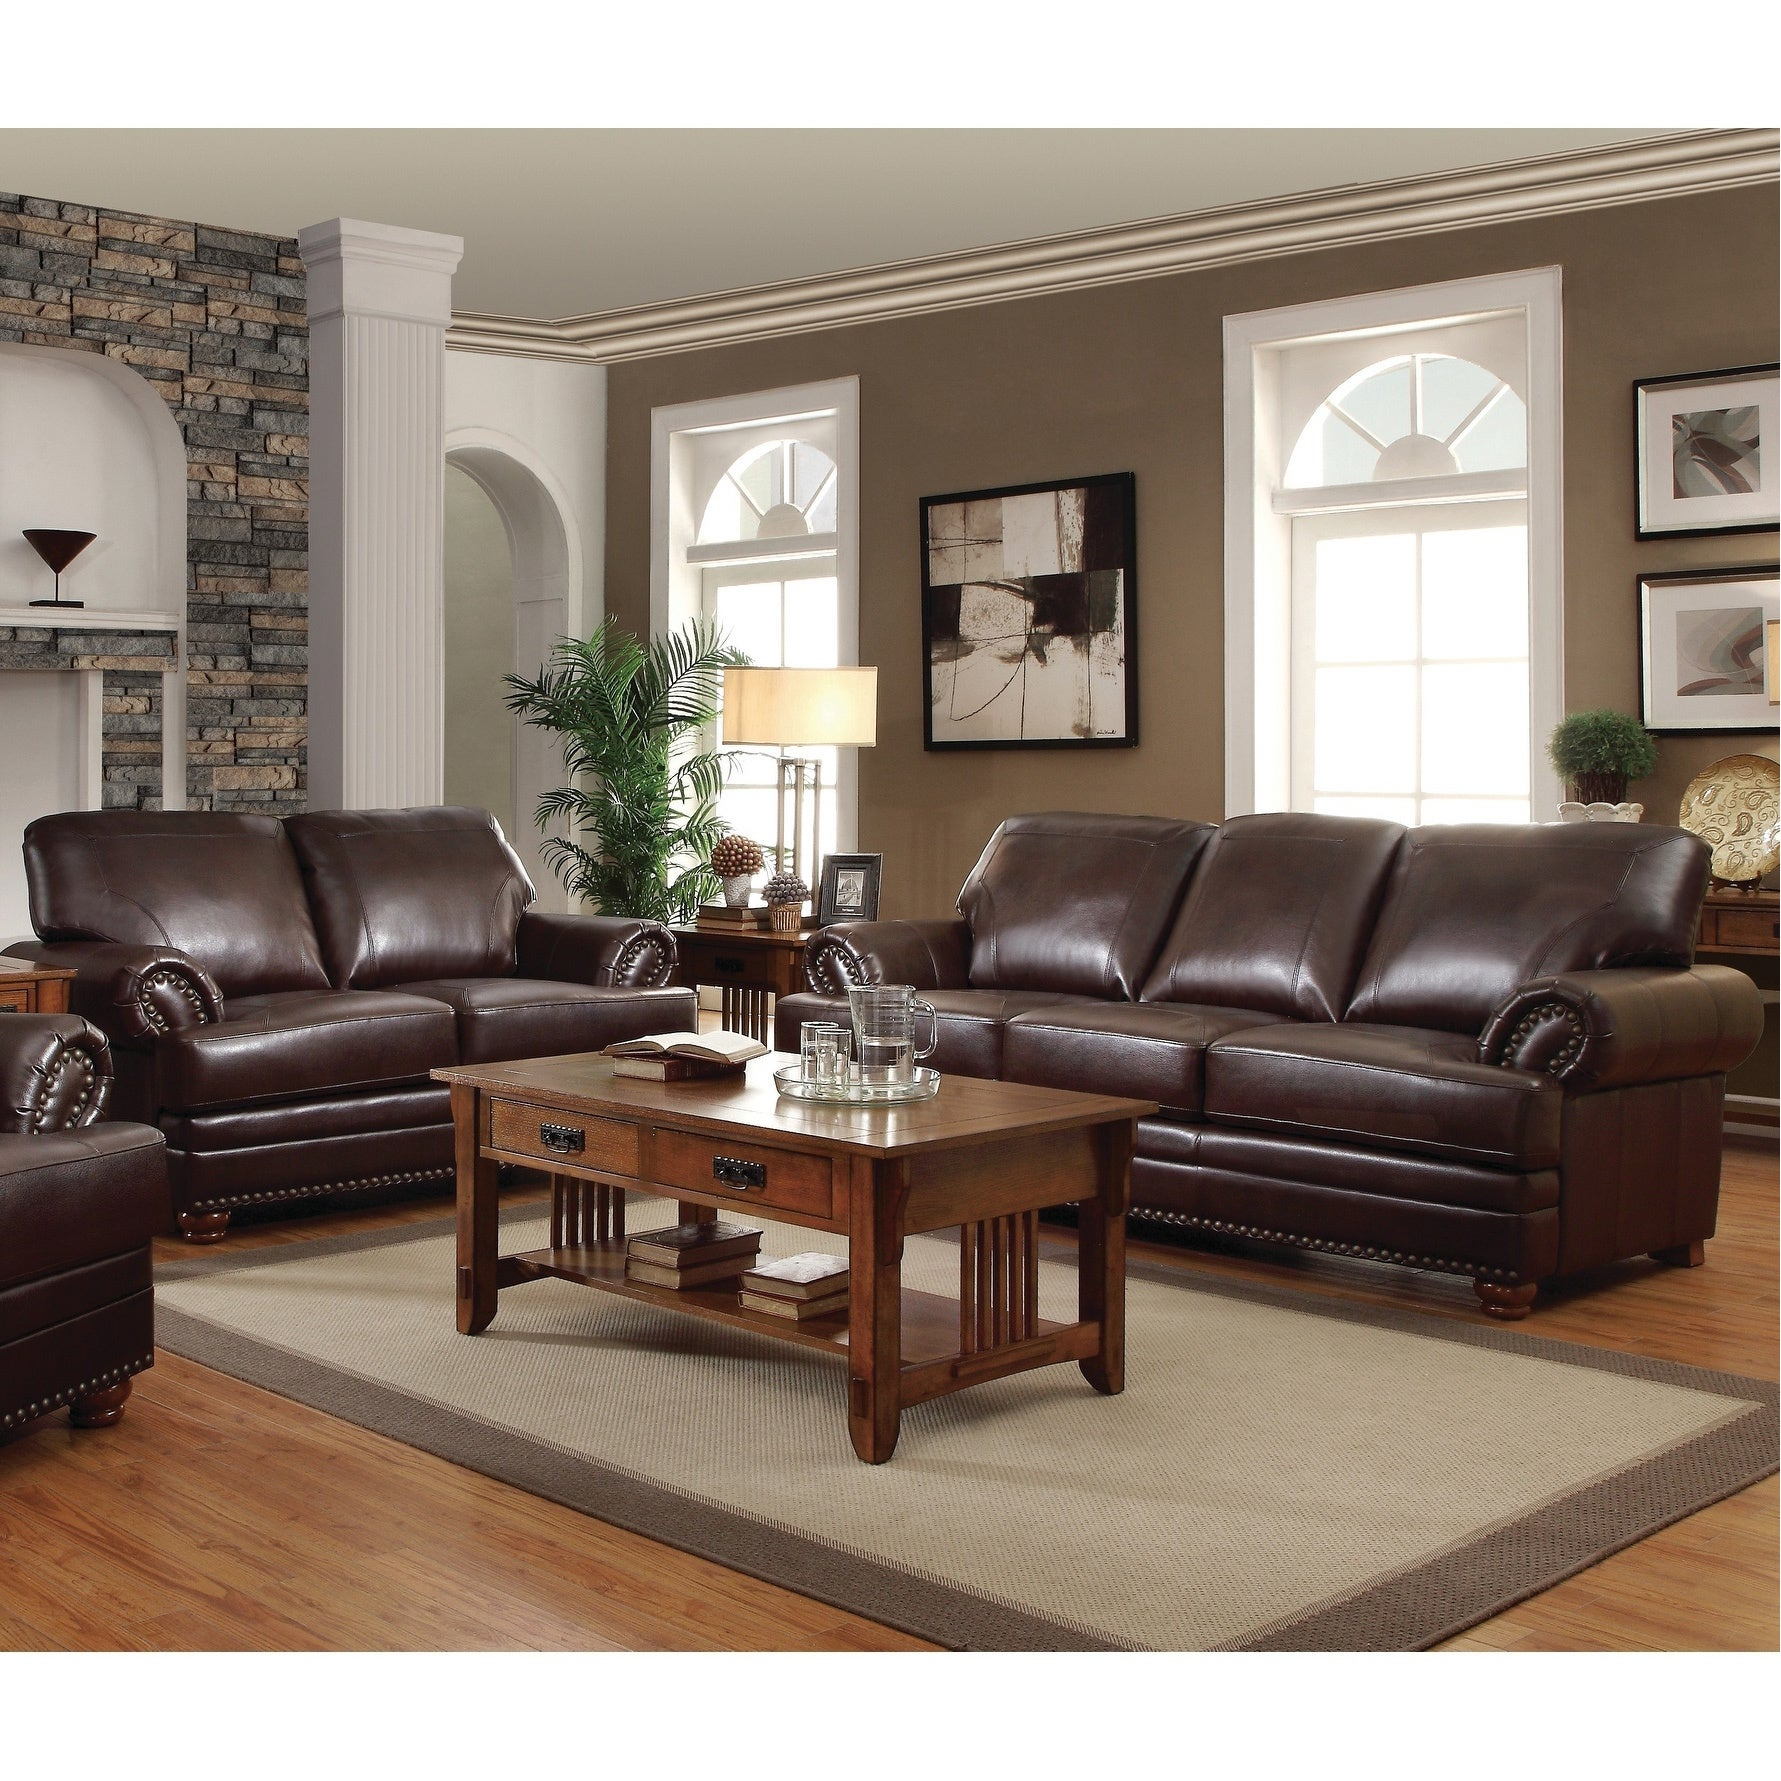 Incredible Buy Living Room Furniture Sets Online At Overstock Our Bralicious Painted Fabric Chair Ideas Braliciousco